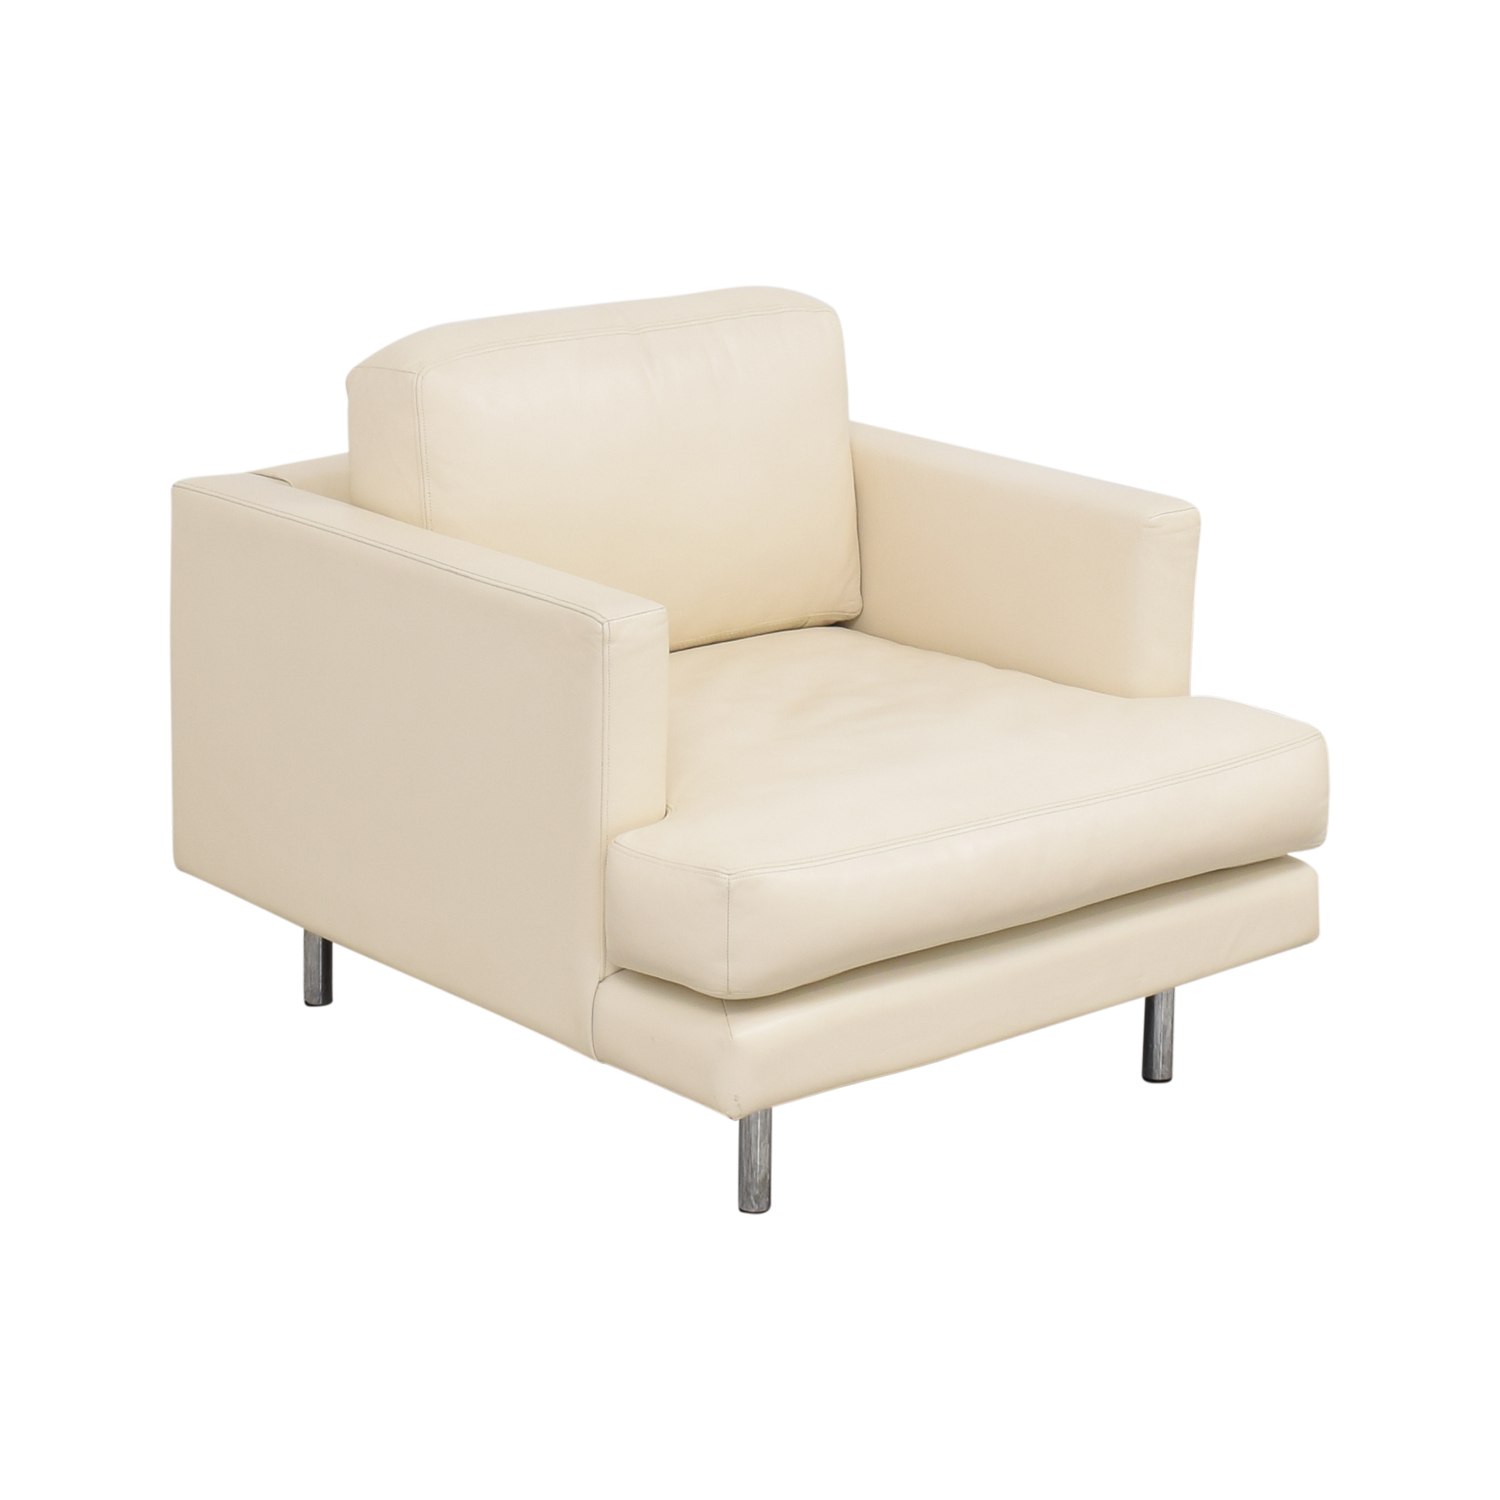 buy Knoll D'Urso Residential Lounge Chair Knoll Accent Chairs